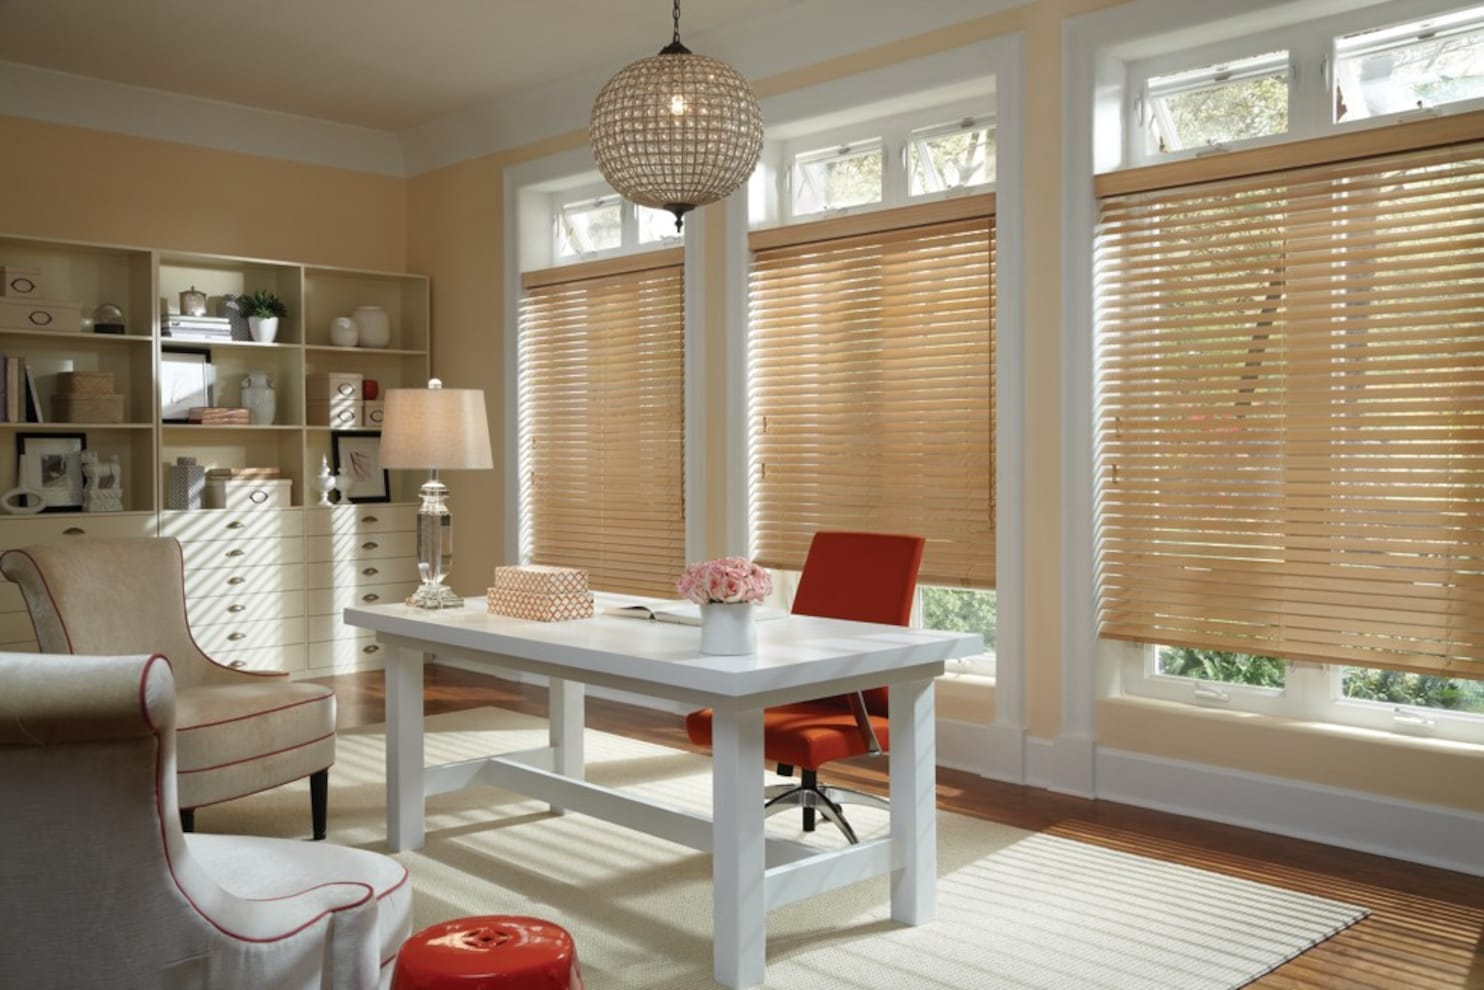 How To Pick Window Treatments For Your Home The Washington Post